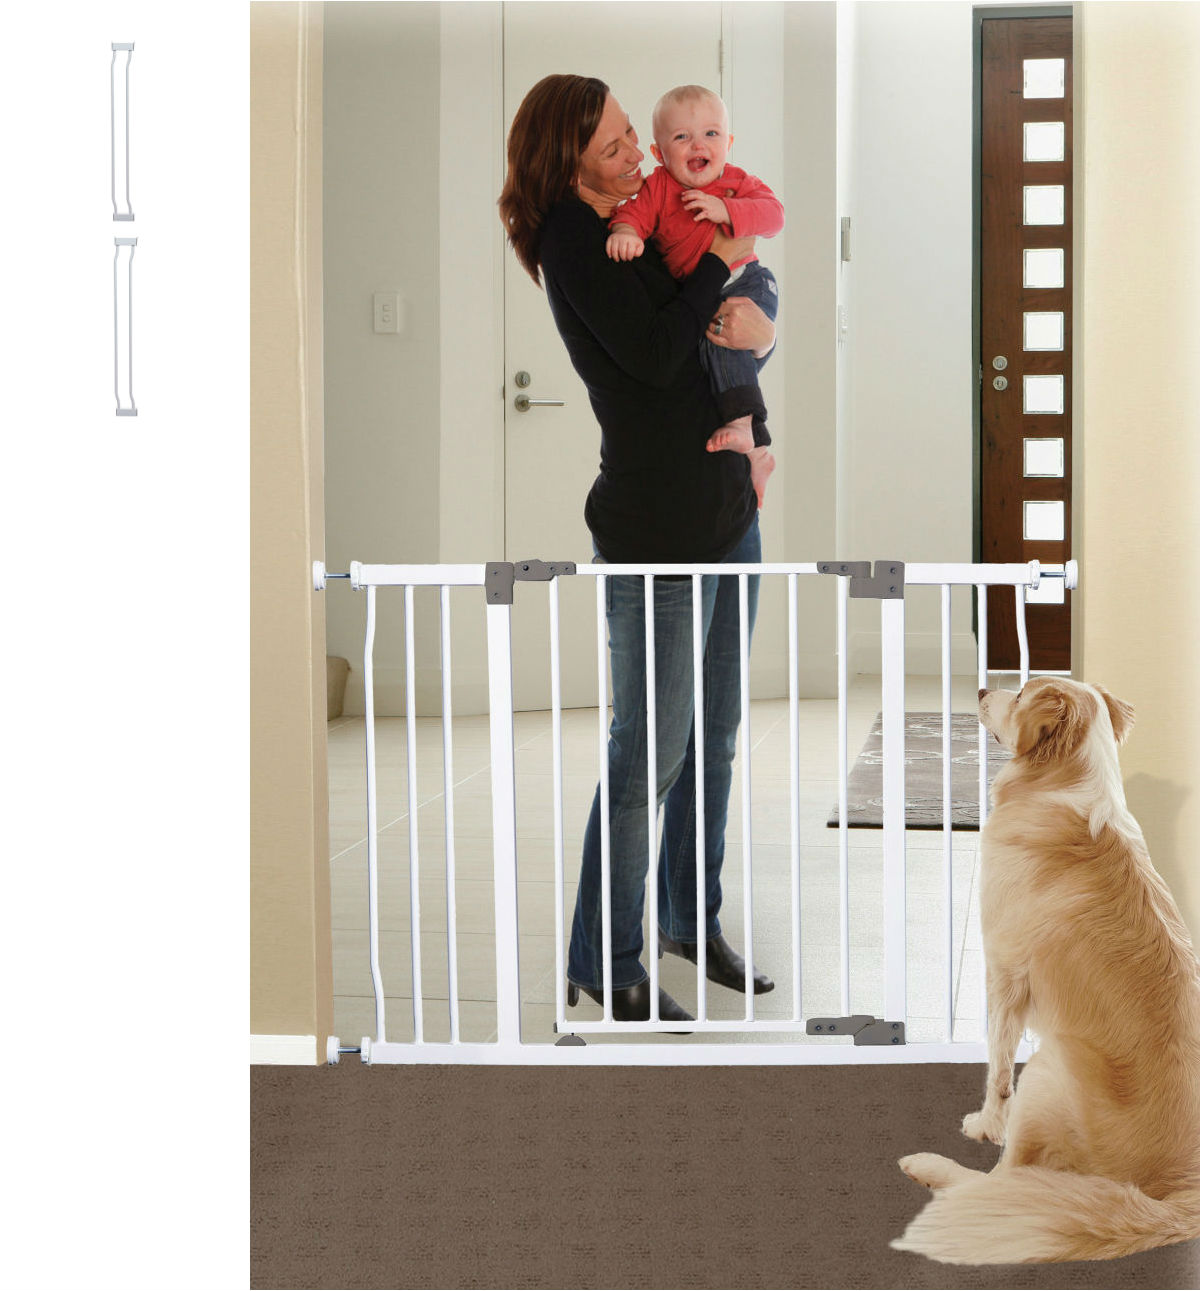 Liberty Xtra Hallway Security Baby Gate Plus Two 3.5 U2013 White (46 To 49W)